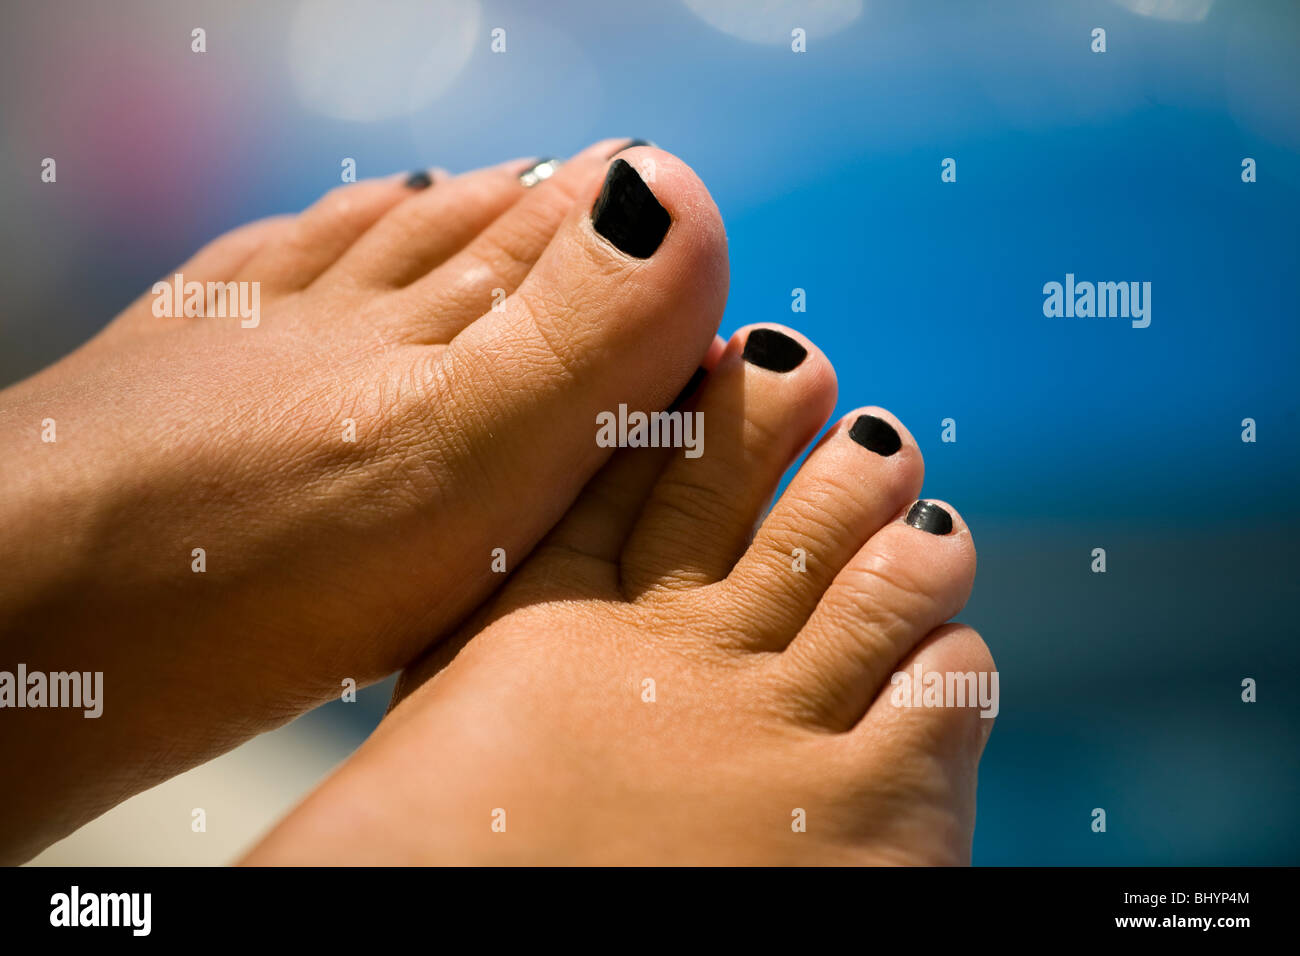 Painted Toe Nails Stock Photos & Painted Toe Nails Stock Images ...